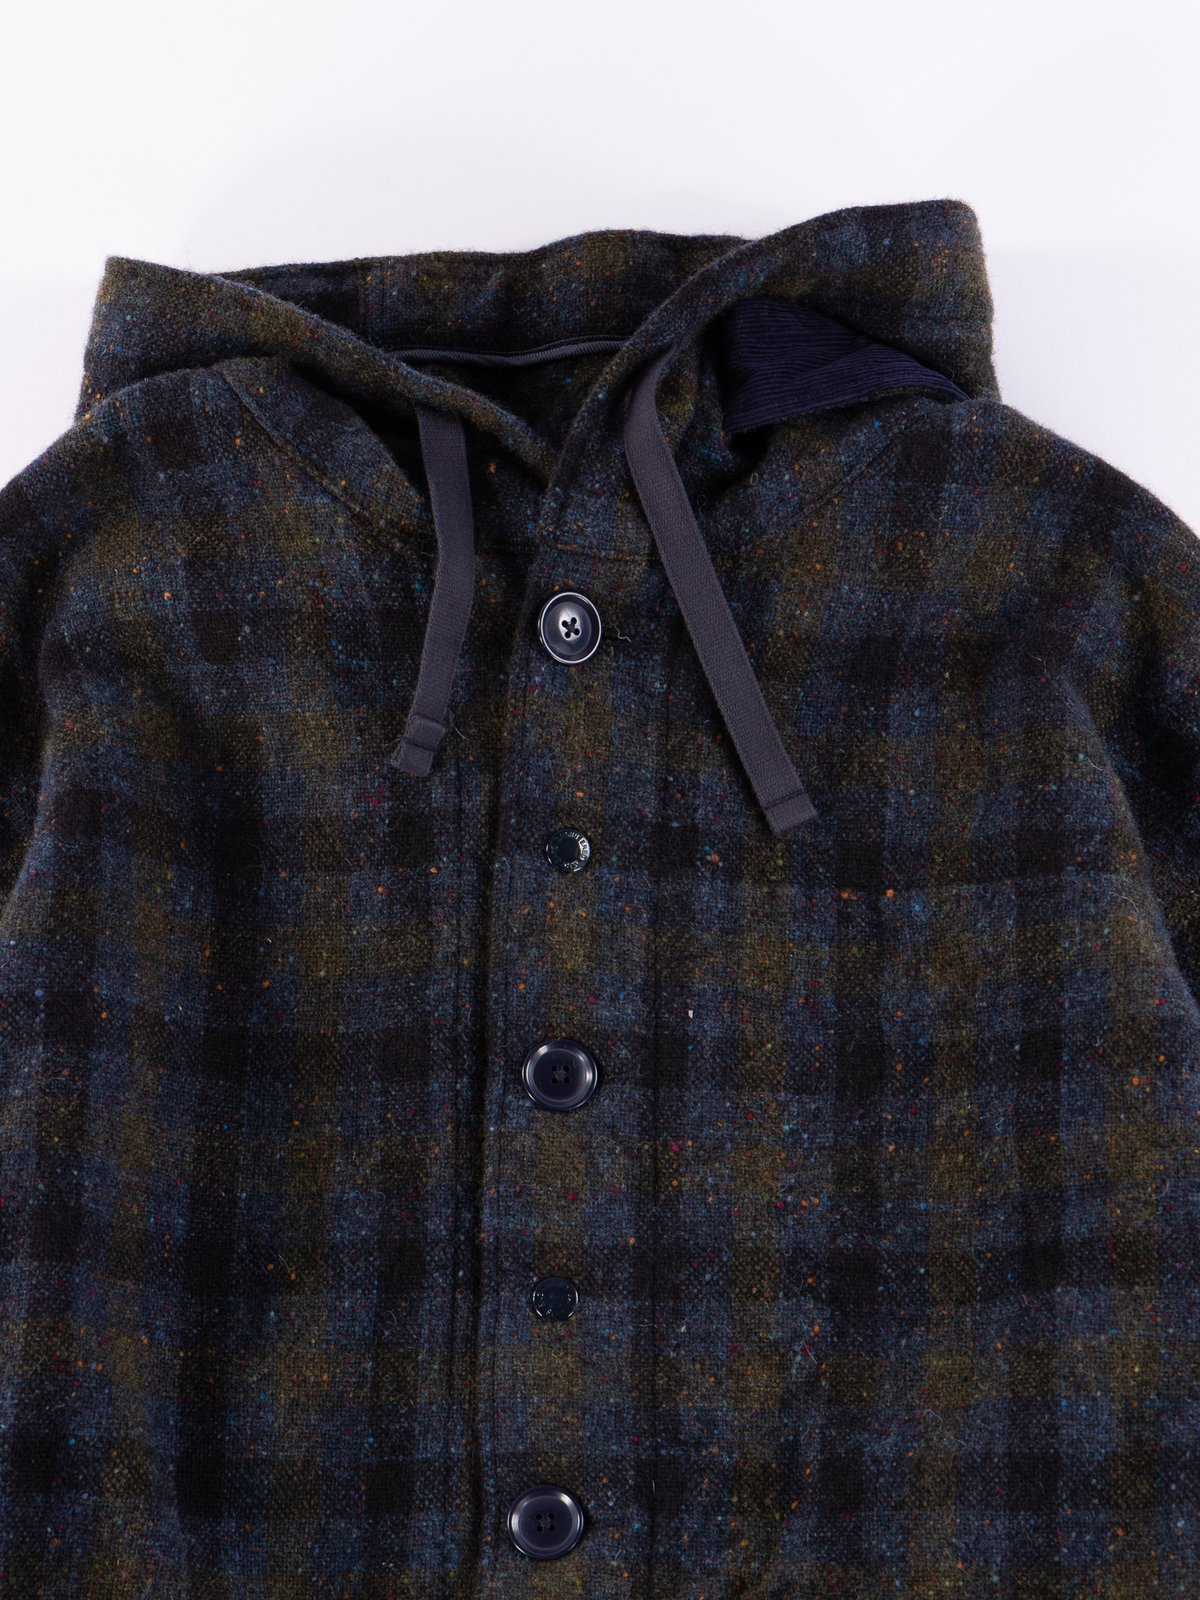 Navy Check Donegal Wool Tweed Madison Parka - Image 4